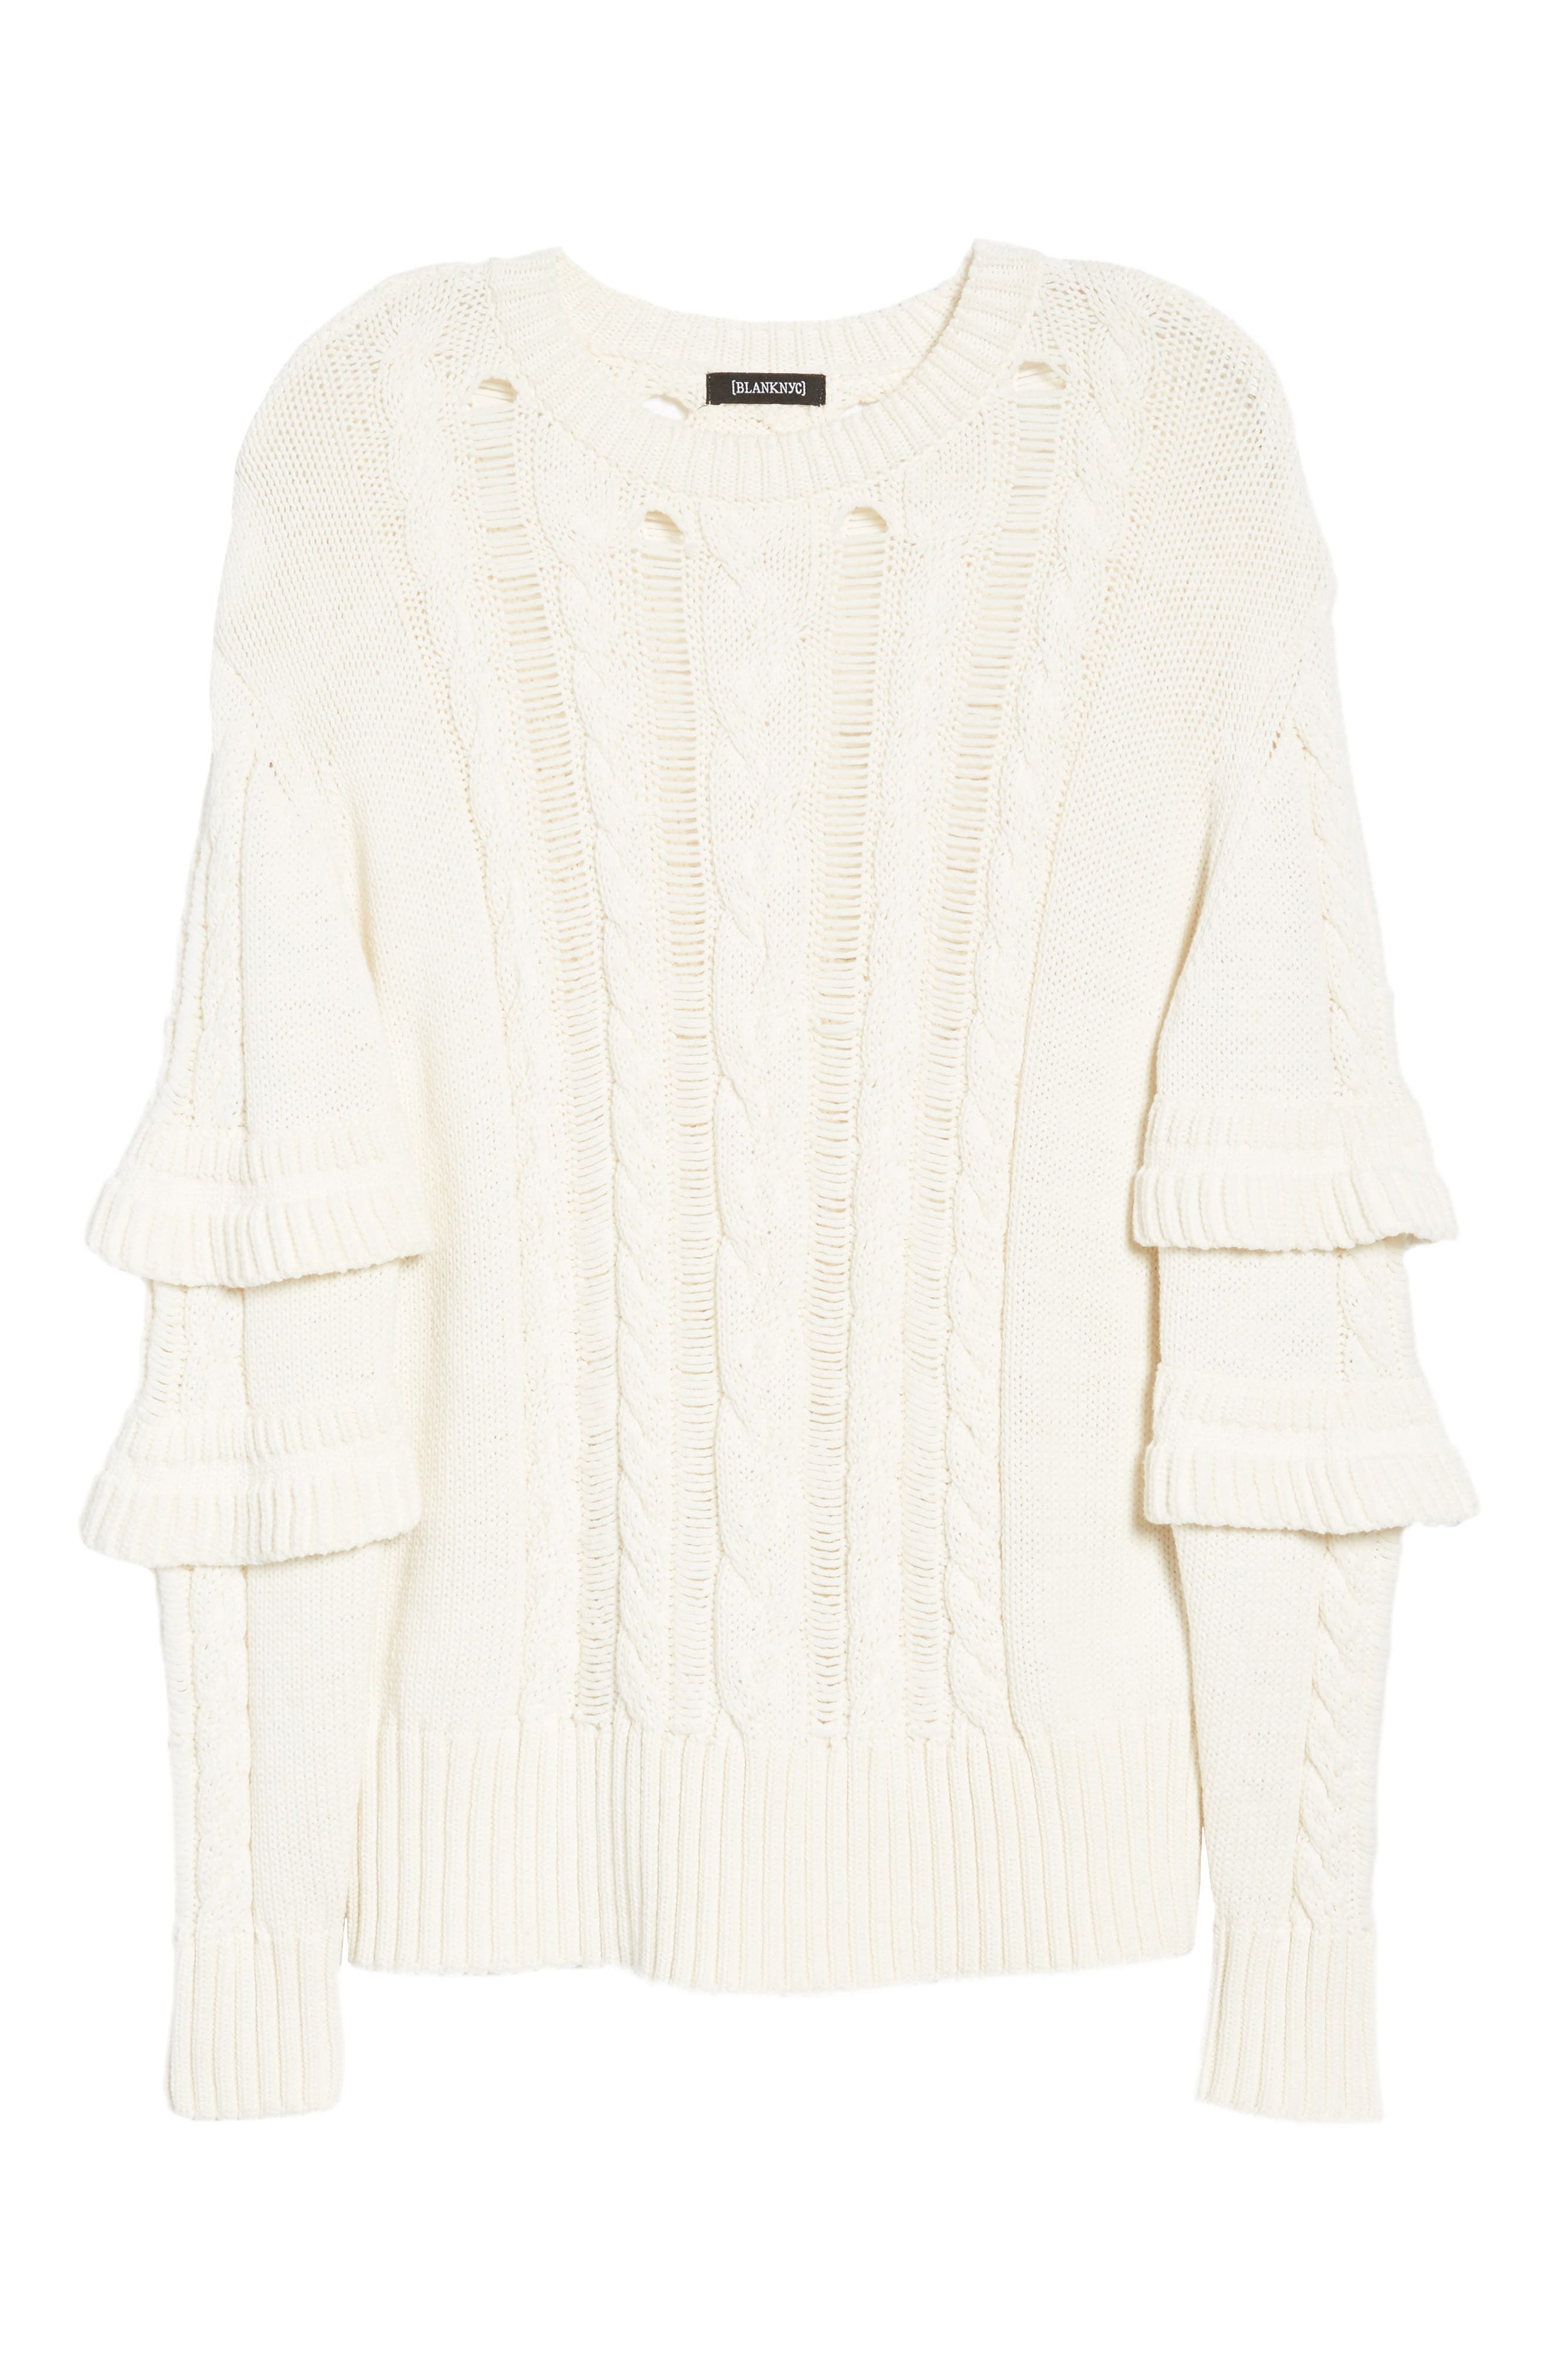 Ruffle Sleeve Cable Knit Sweater,                             Alternate thumbnail 6, color,                             Just For Kicks/ Ivory